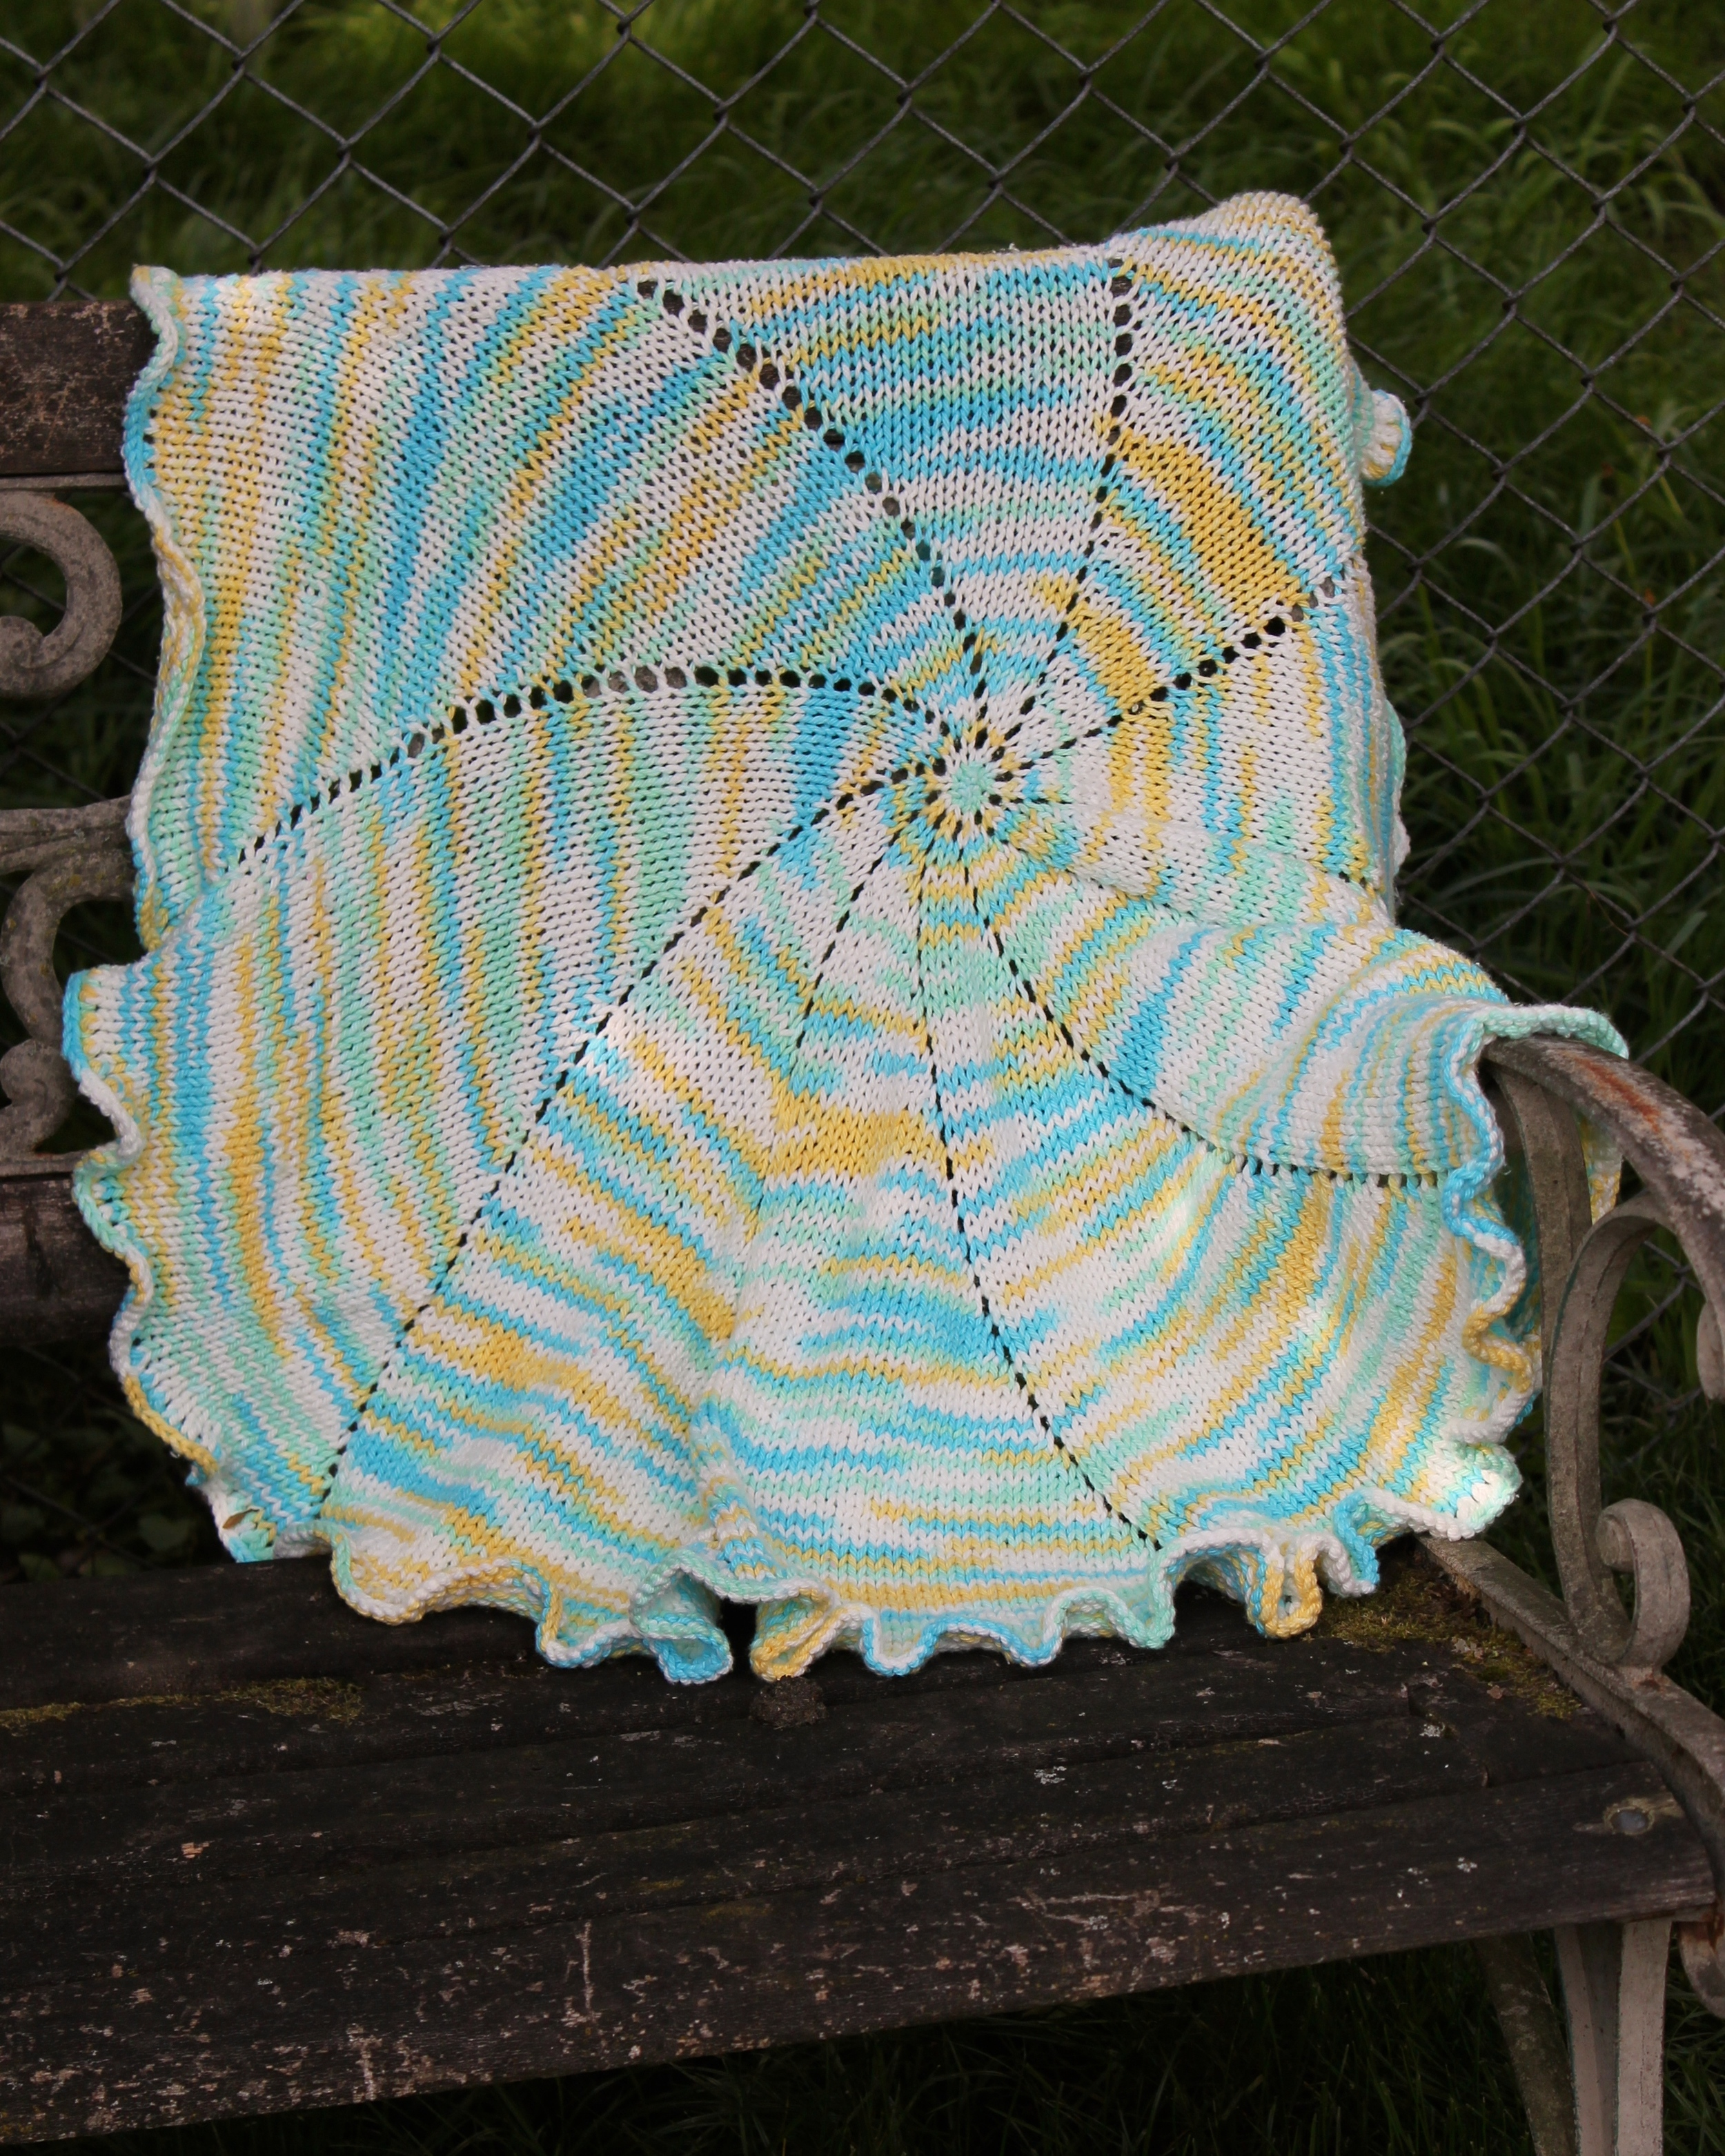 Spiral baby blanket made from variegated blue and yellow cotton yarn